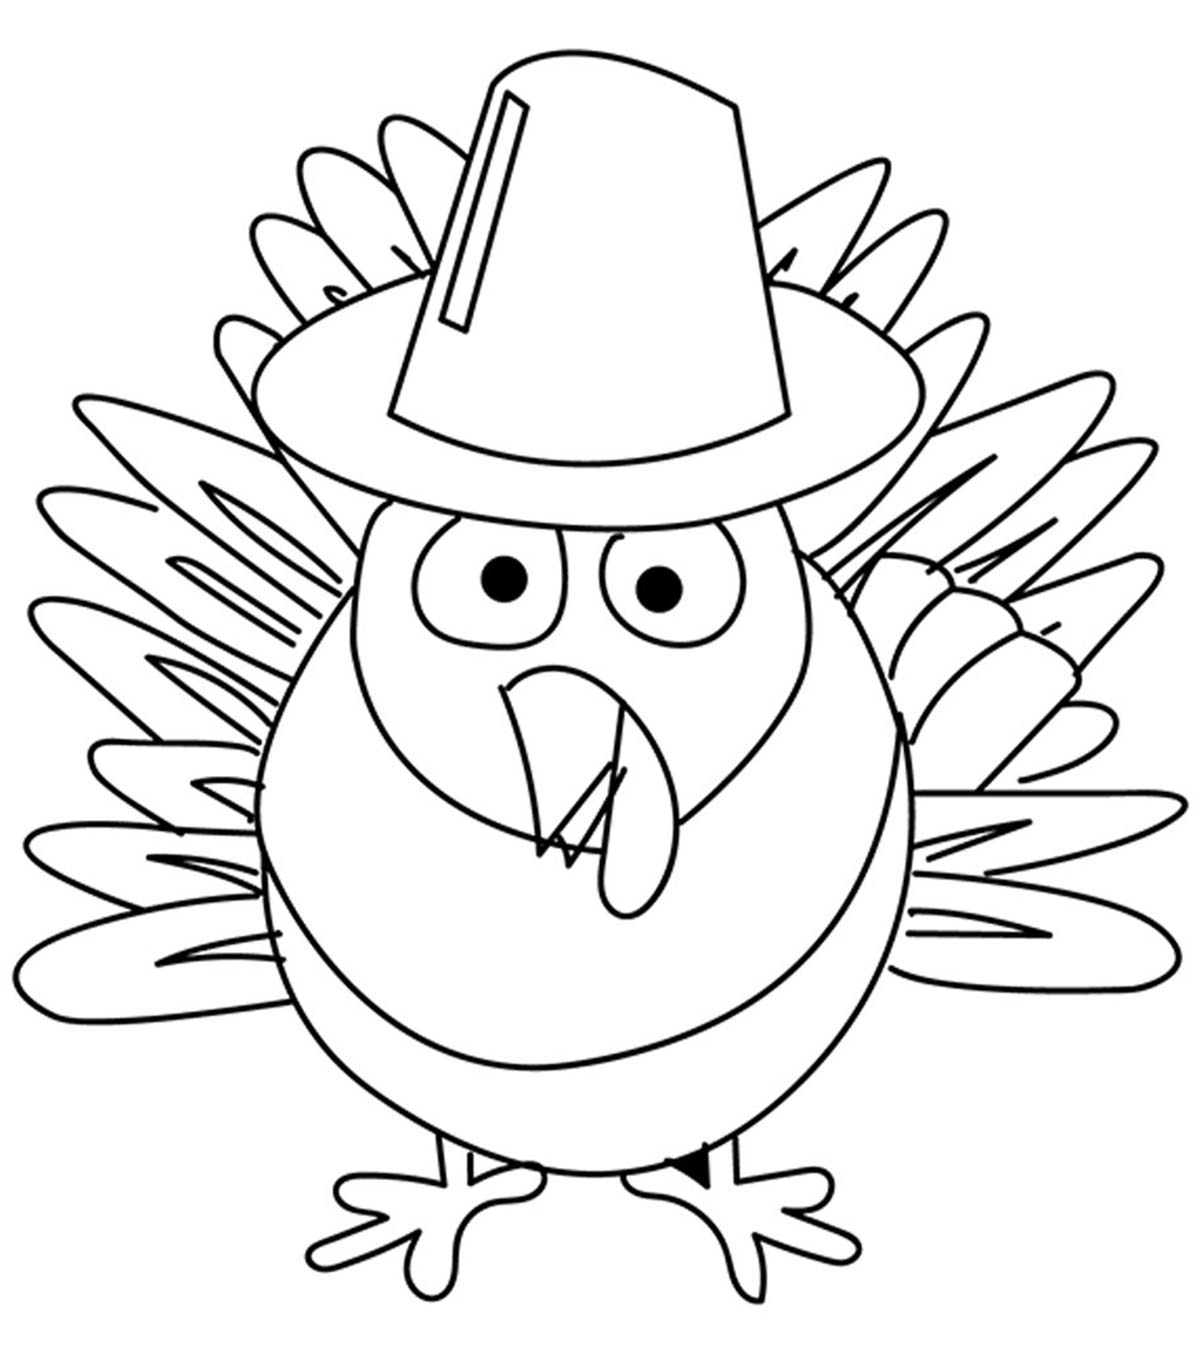 Thanksgiving Coloring Pages Online - Coloring Home | 1350x1200